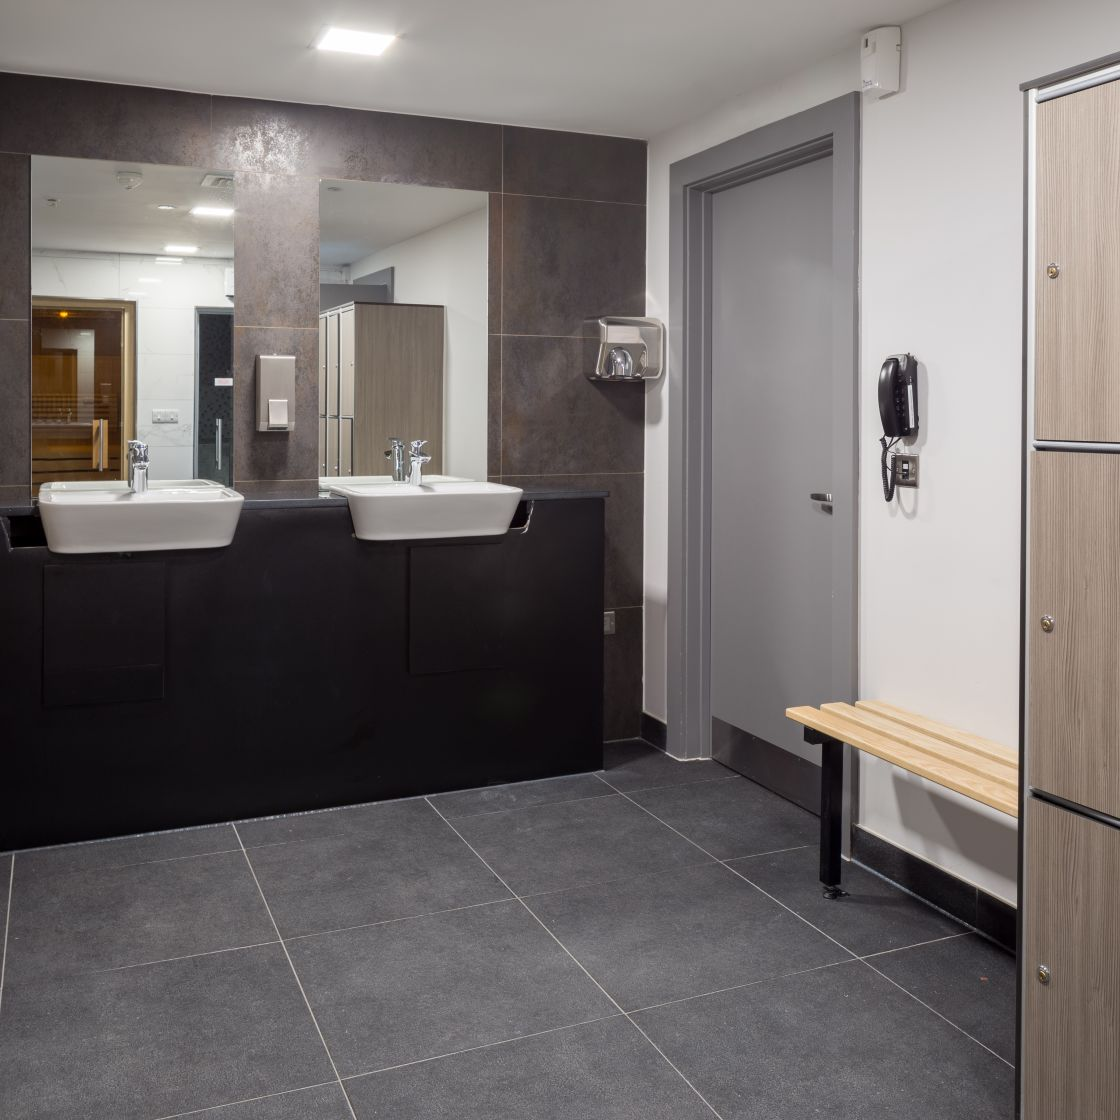 Changing room at IconInc, The Ascent. Student Accommodation in Liverpool